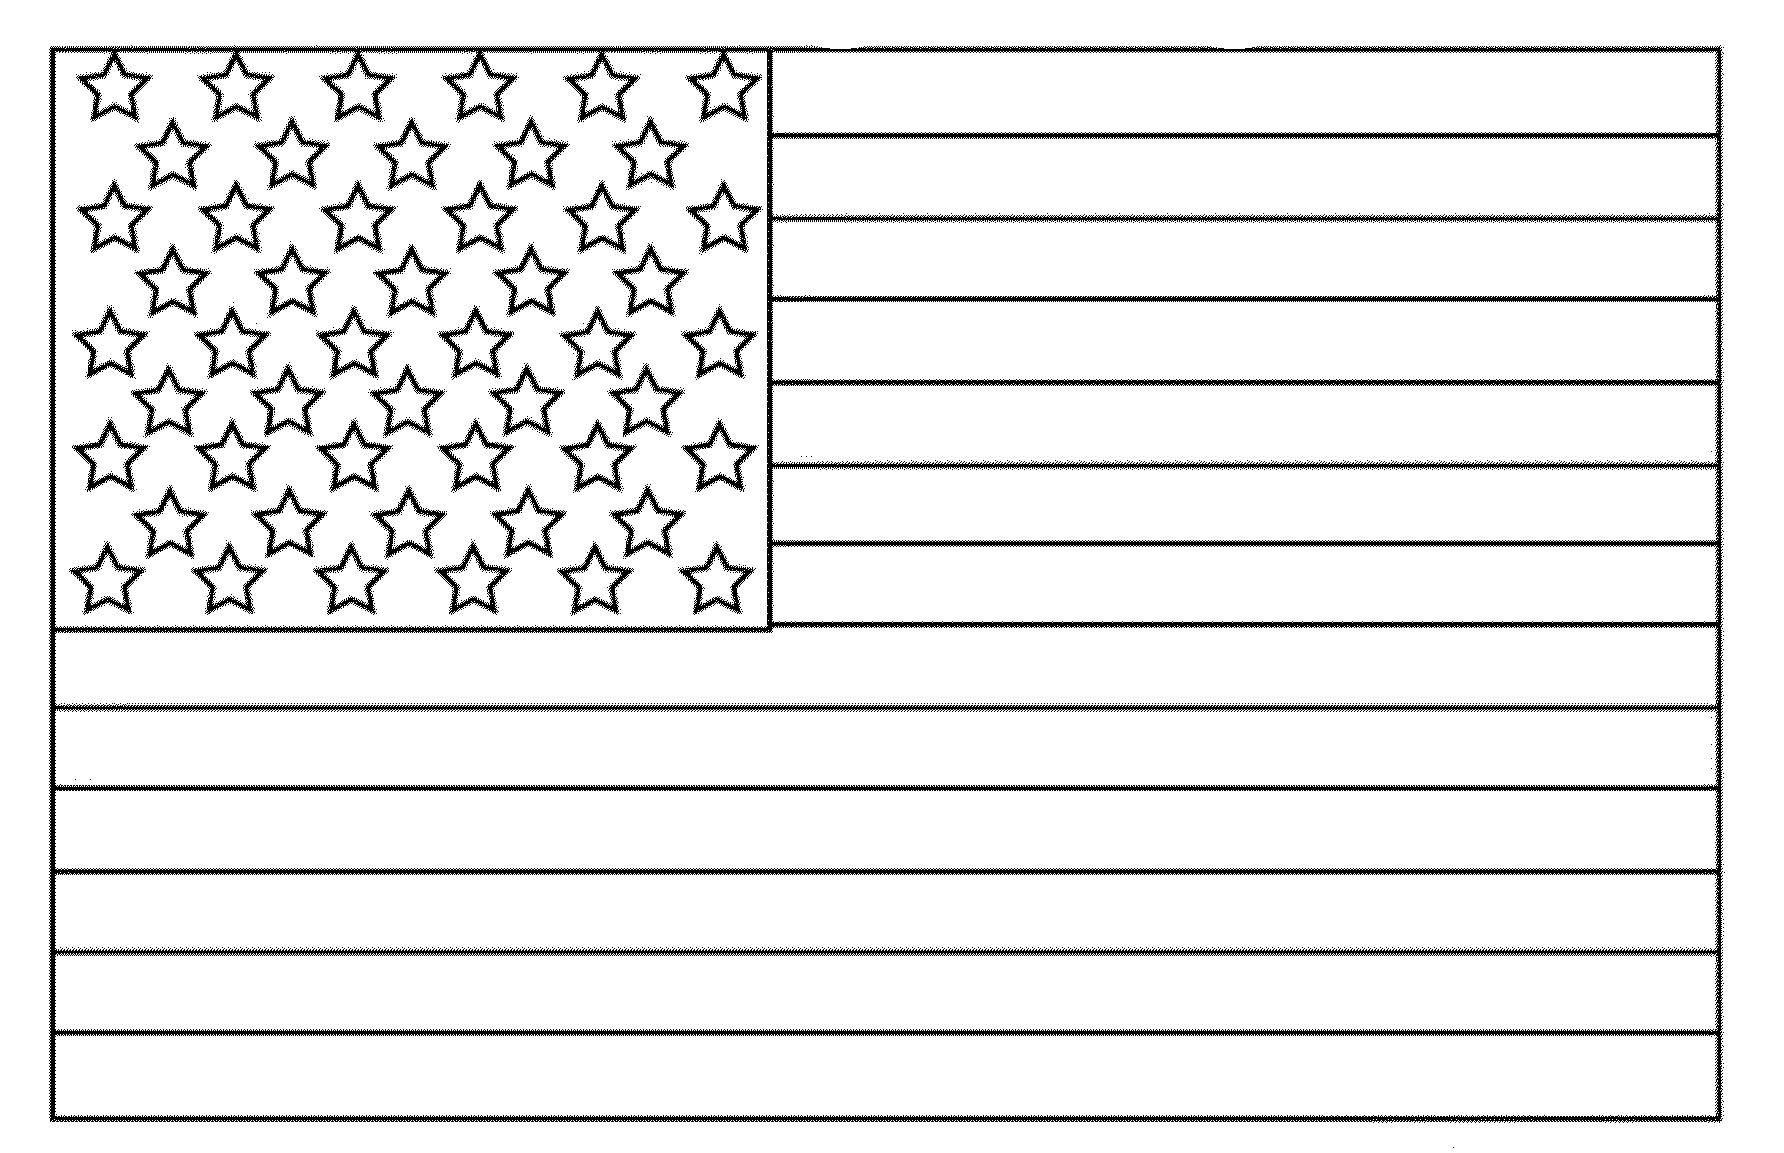 American flag coloring page to print for American flag coloring page for first grade